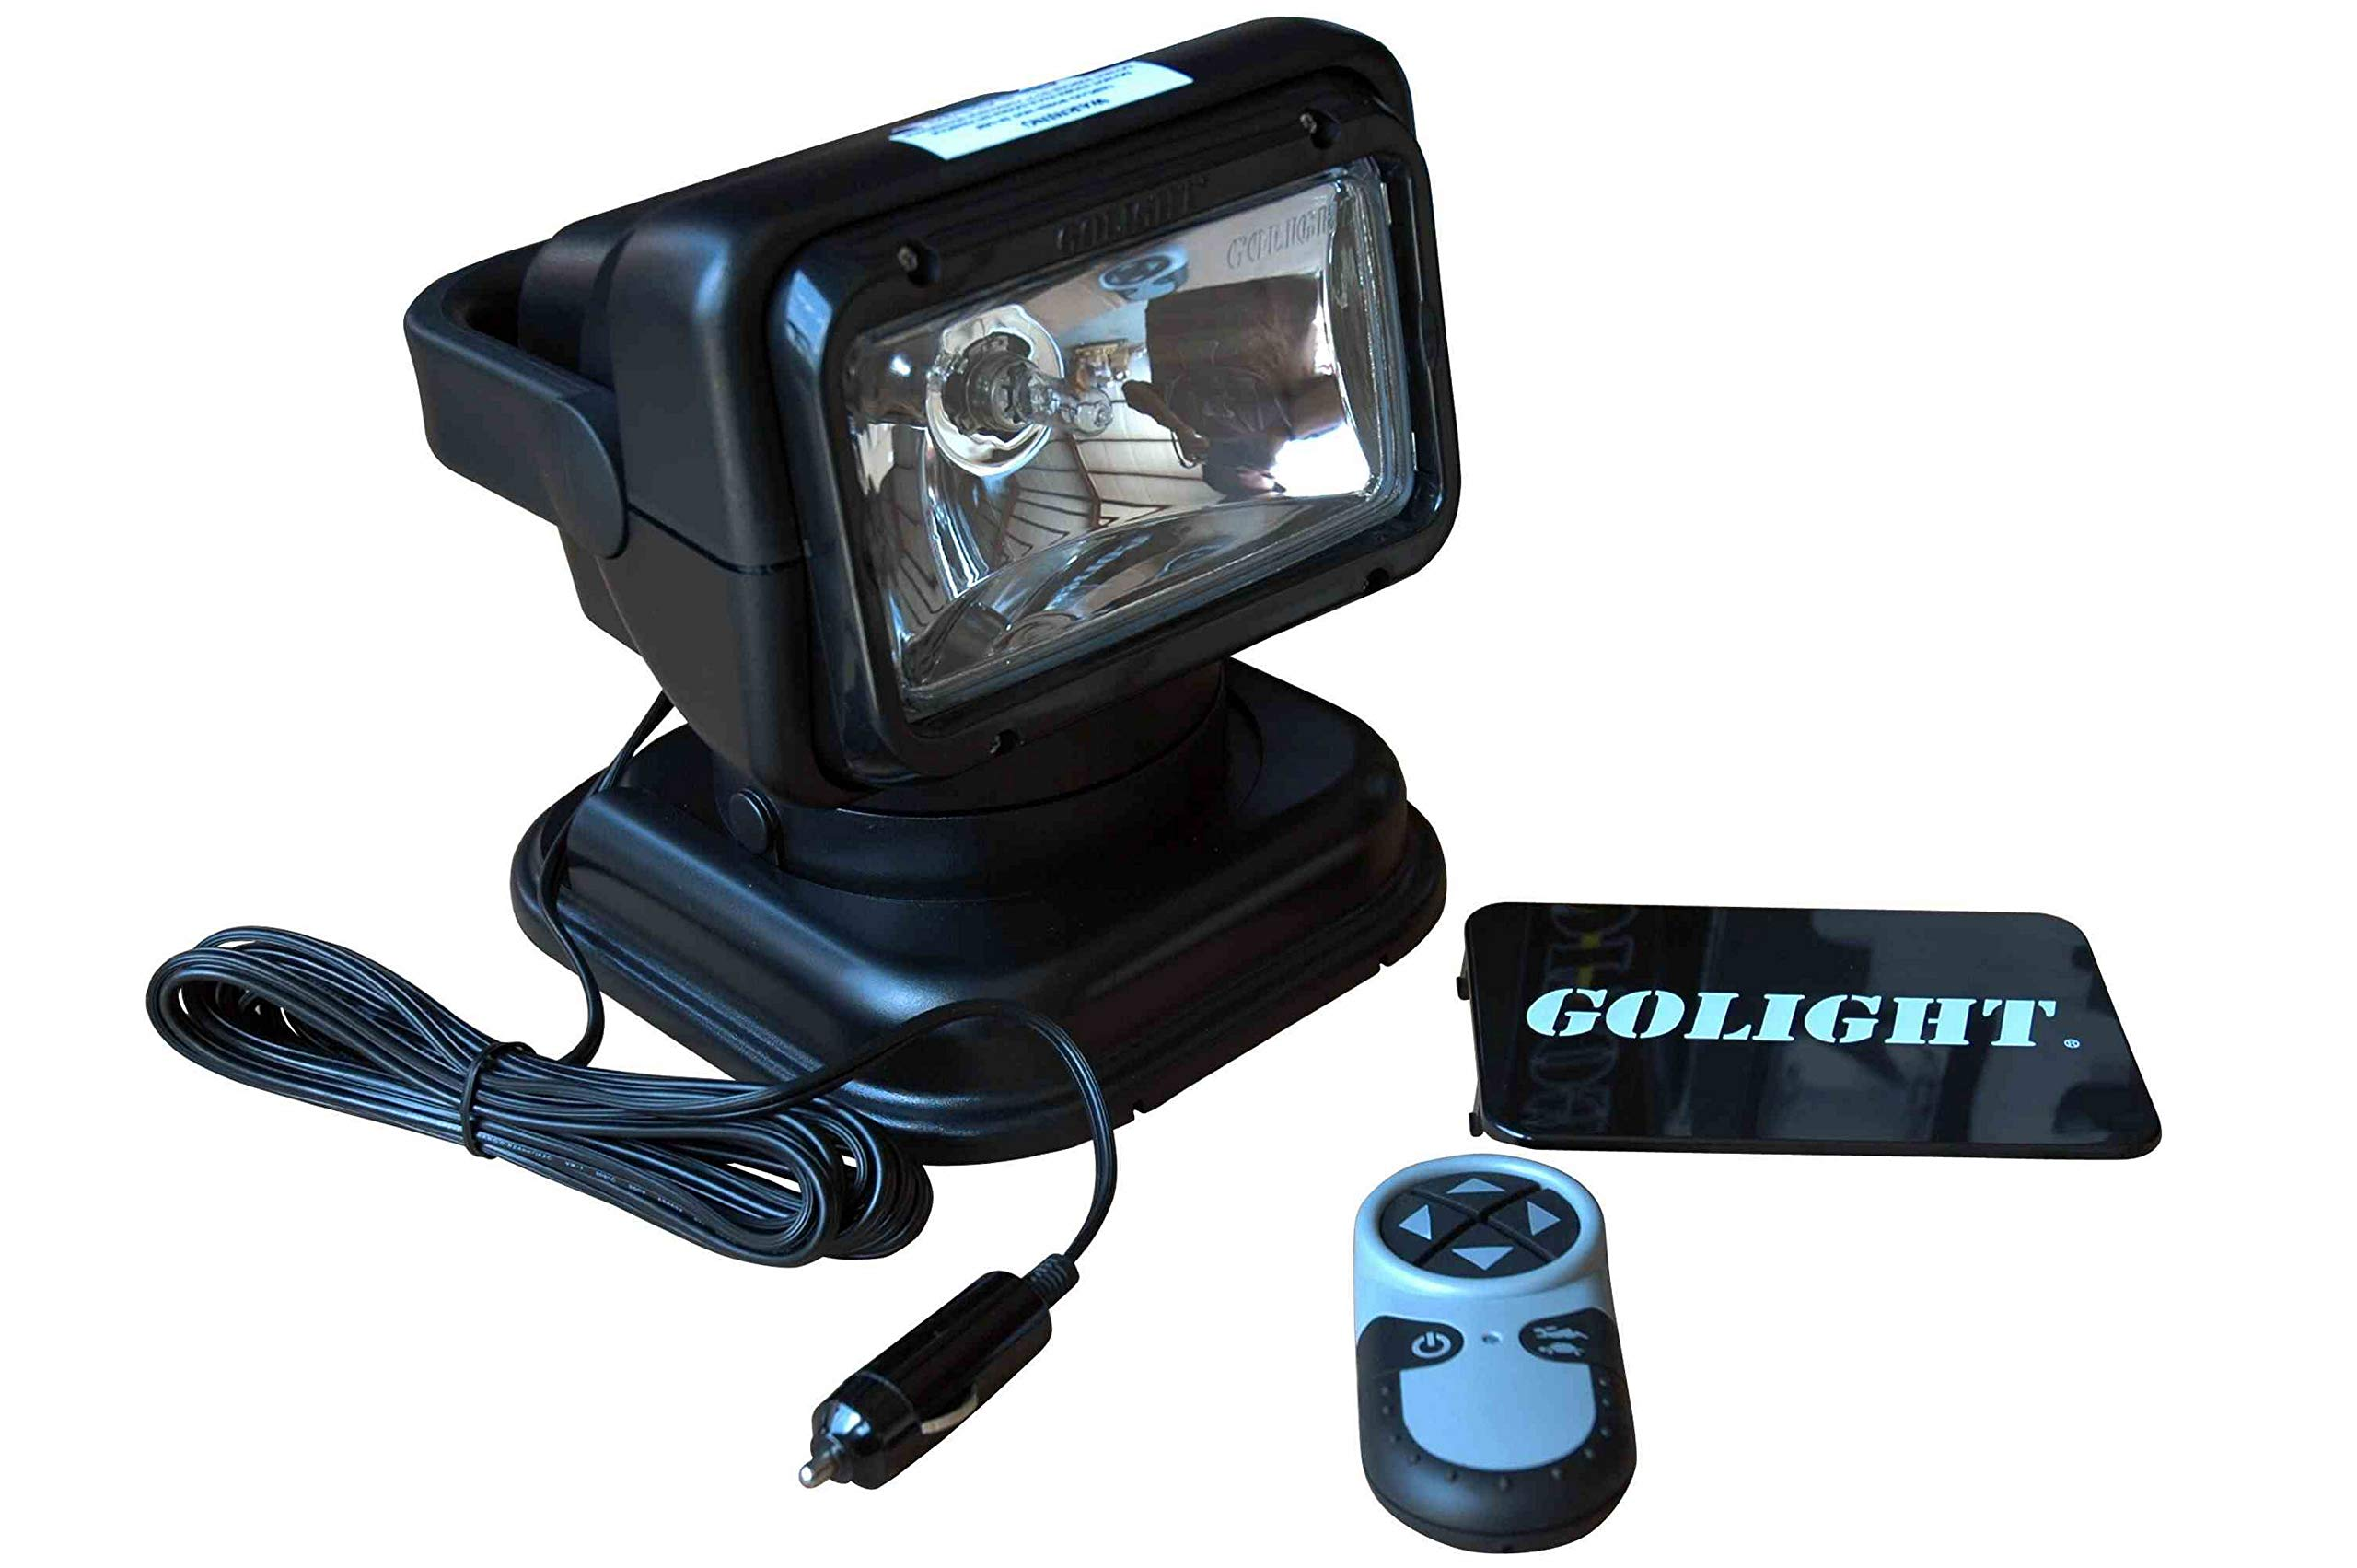 Golight Radioray GL-7951 Wireless Remote Control Spotlight - Handheld Remote -Magnetic Shoe by Larson Electronics